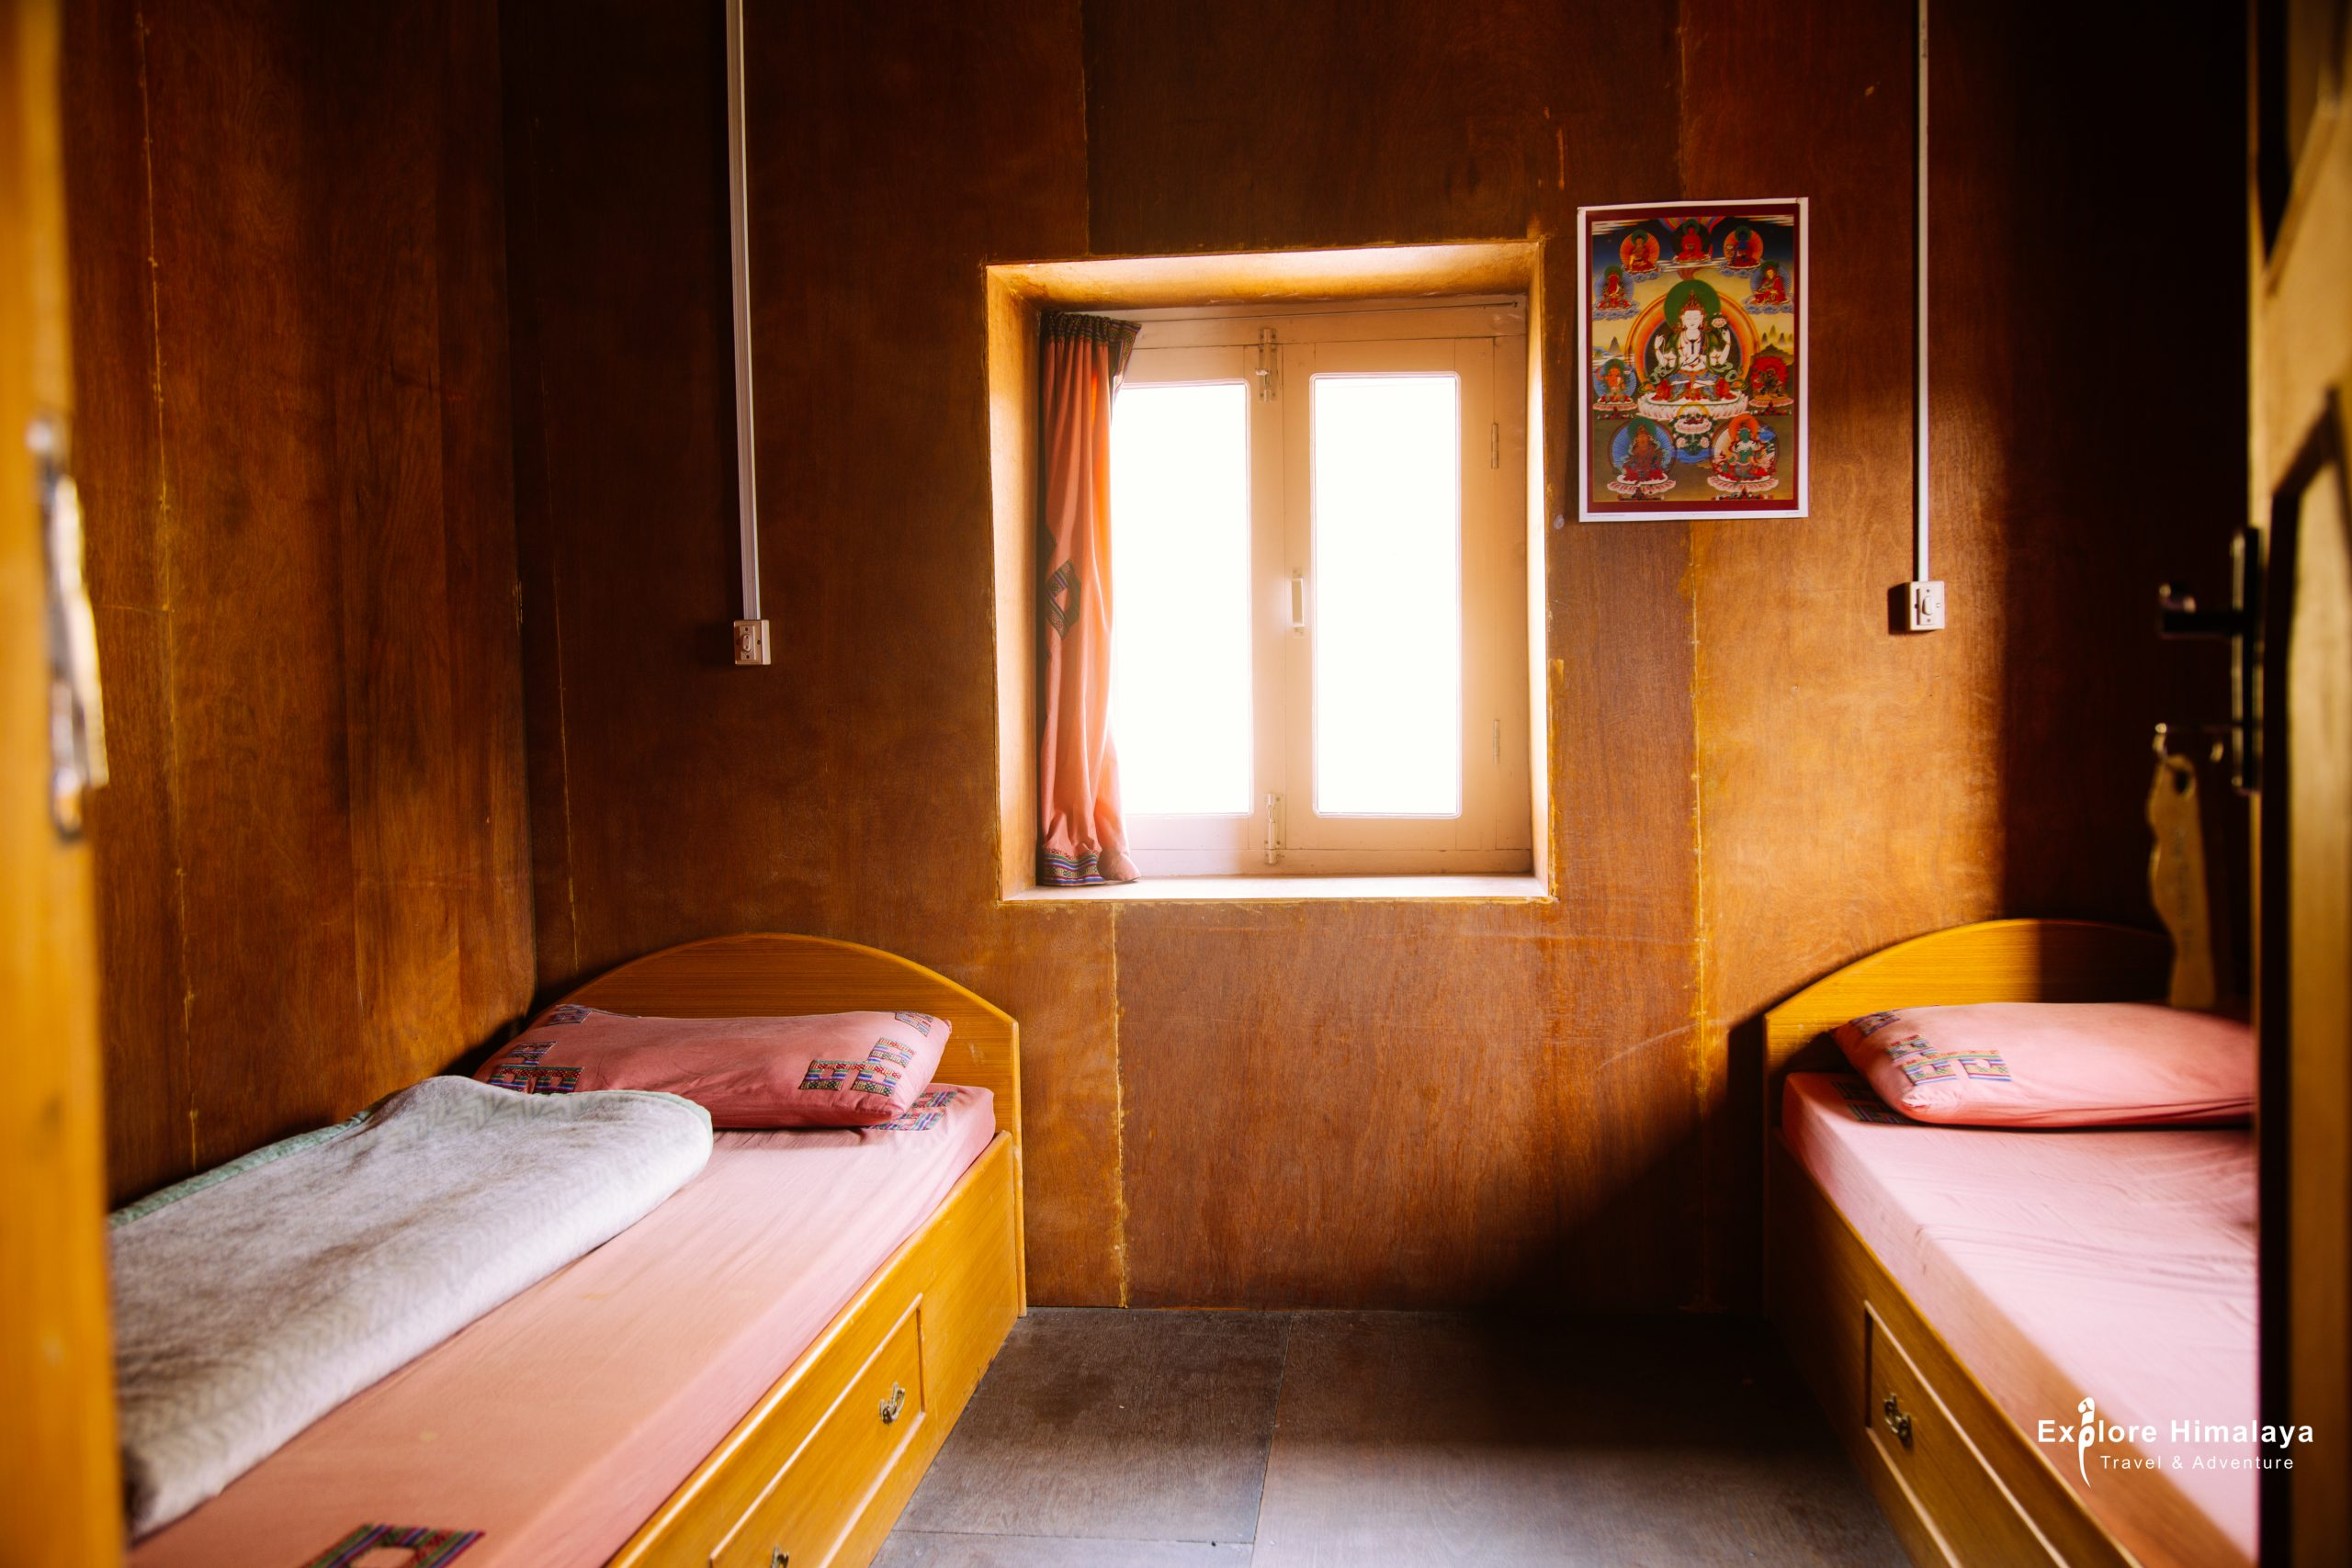 Accommodation in Everest Base Camp trek - A twin room in a tea house twin room